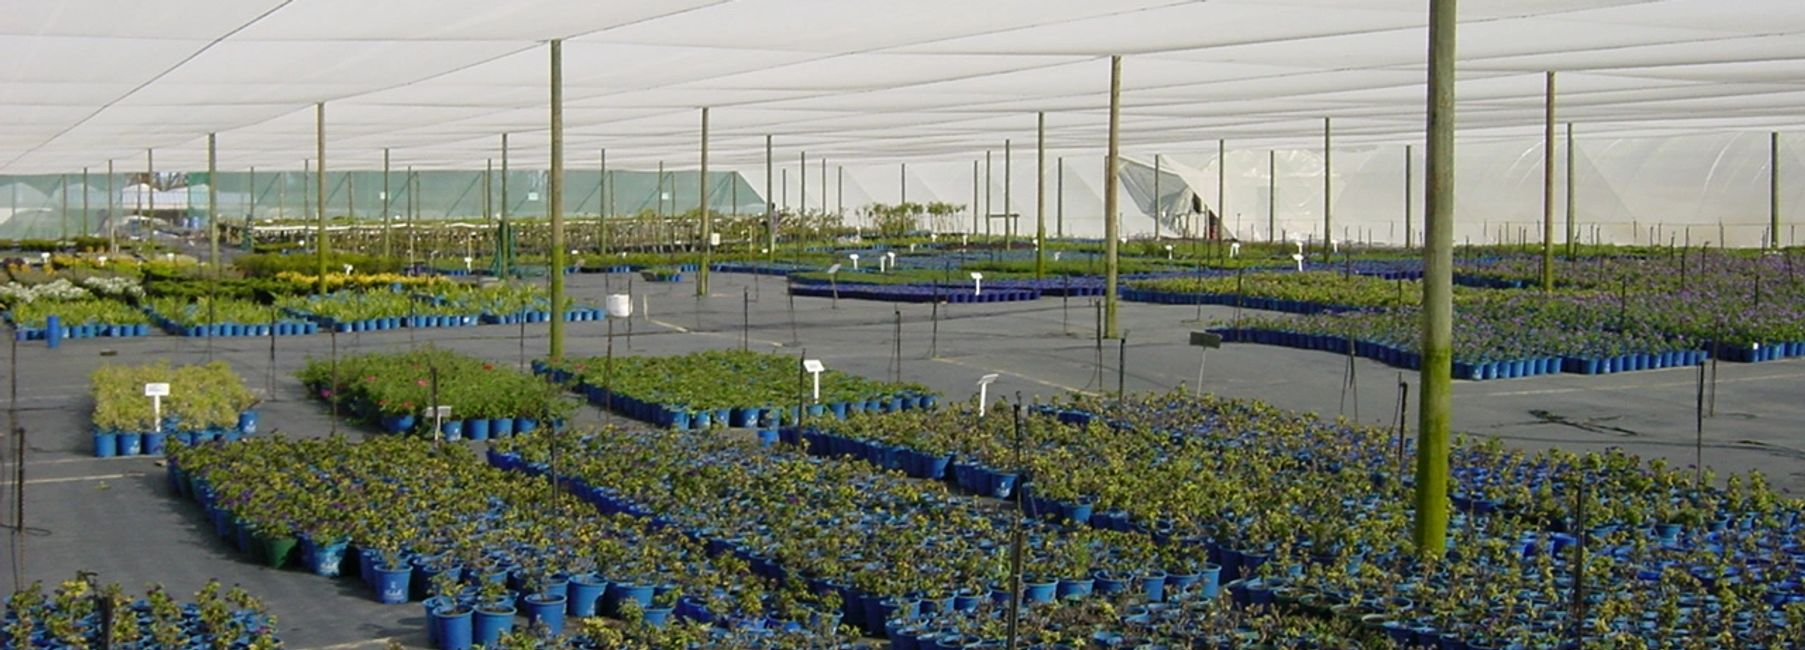 Agricultural and Farming shade solution